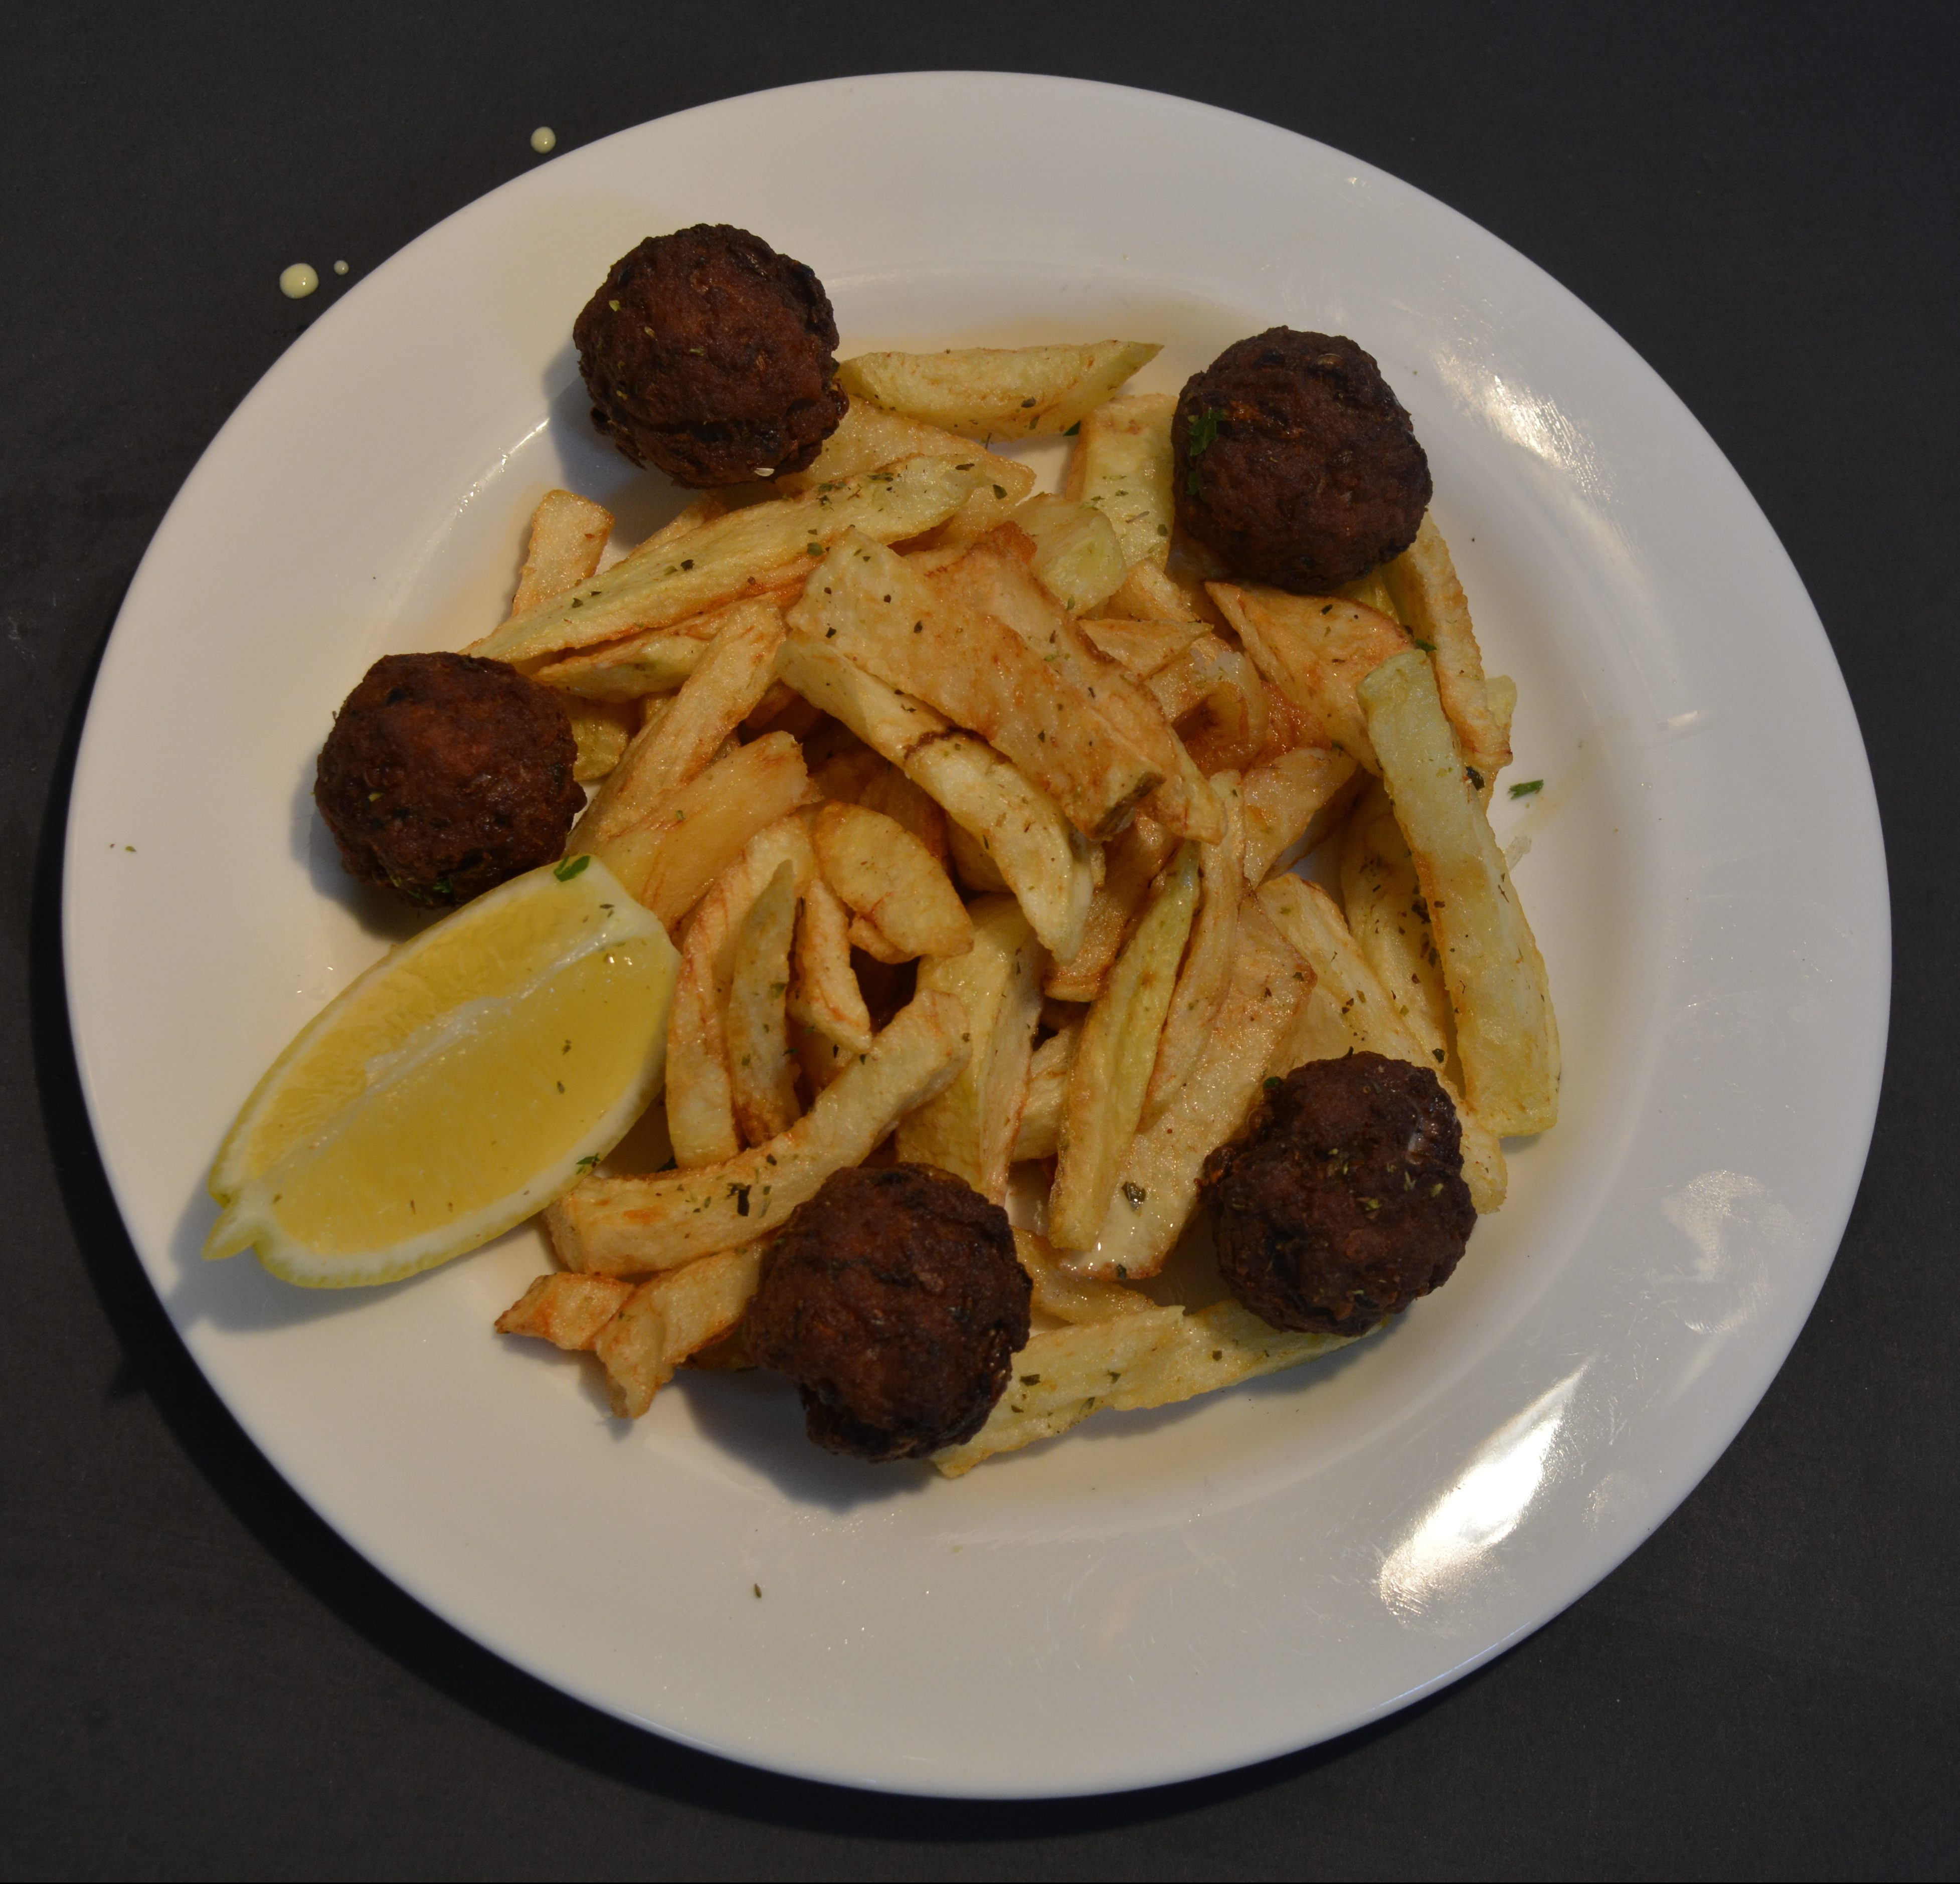 Meatballs served with homemade chips and sauce of your choice